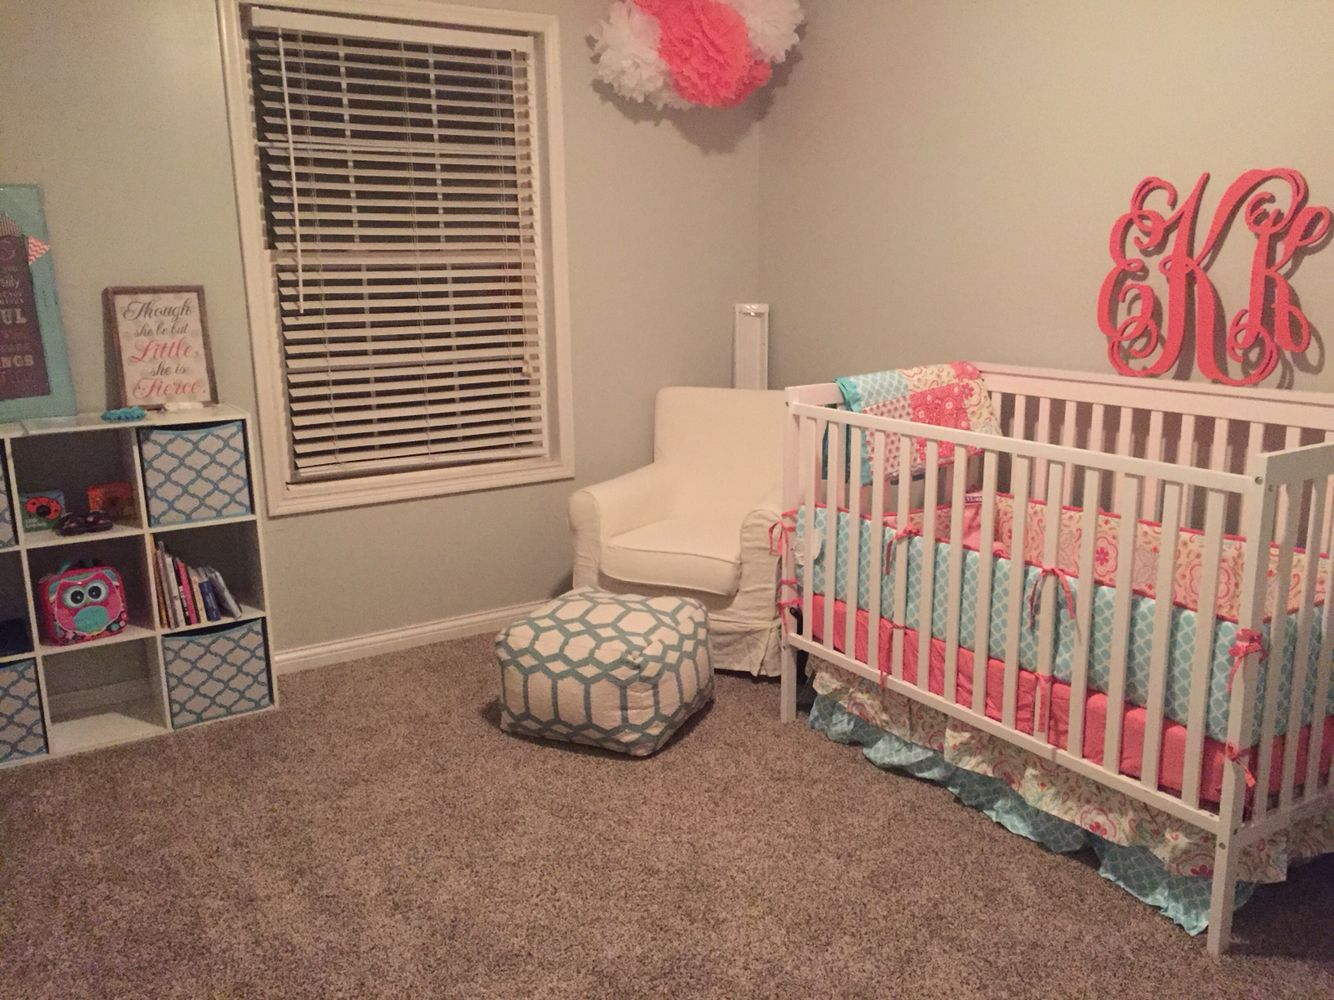 Gocrib adventure crib for sale - Coral Aqua And White Nursery For Baby Girl White Crib From Walmart Peanut